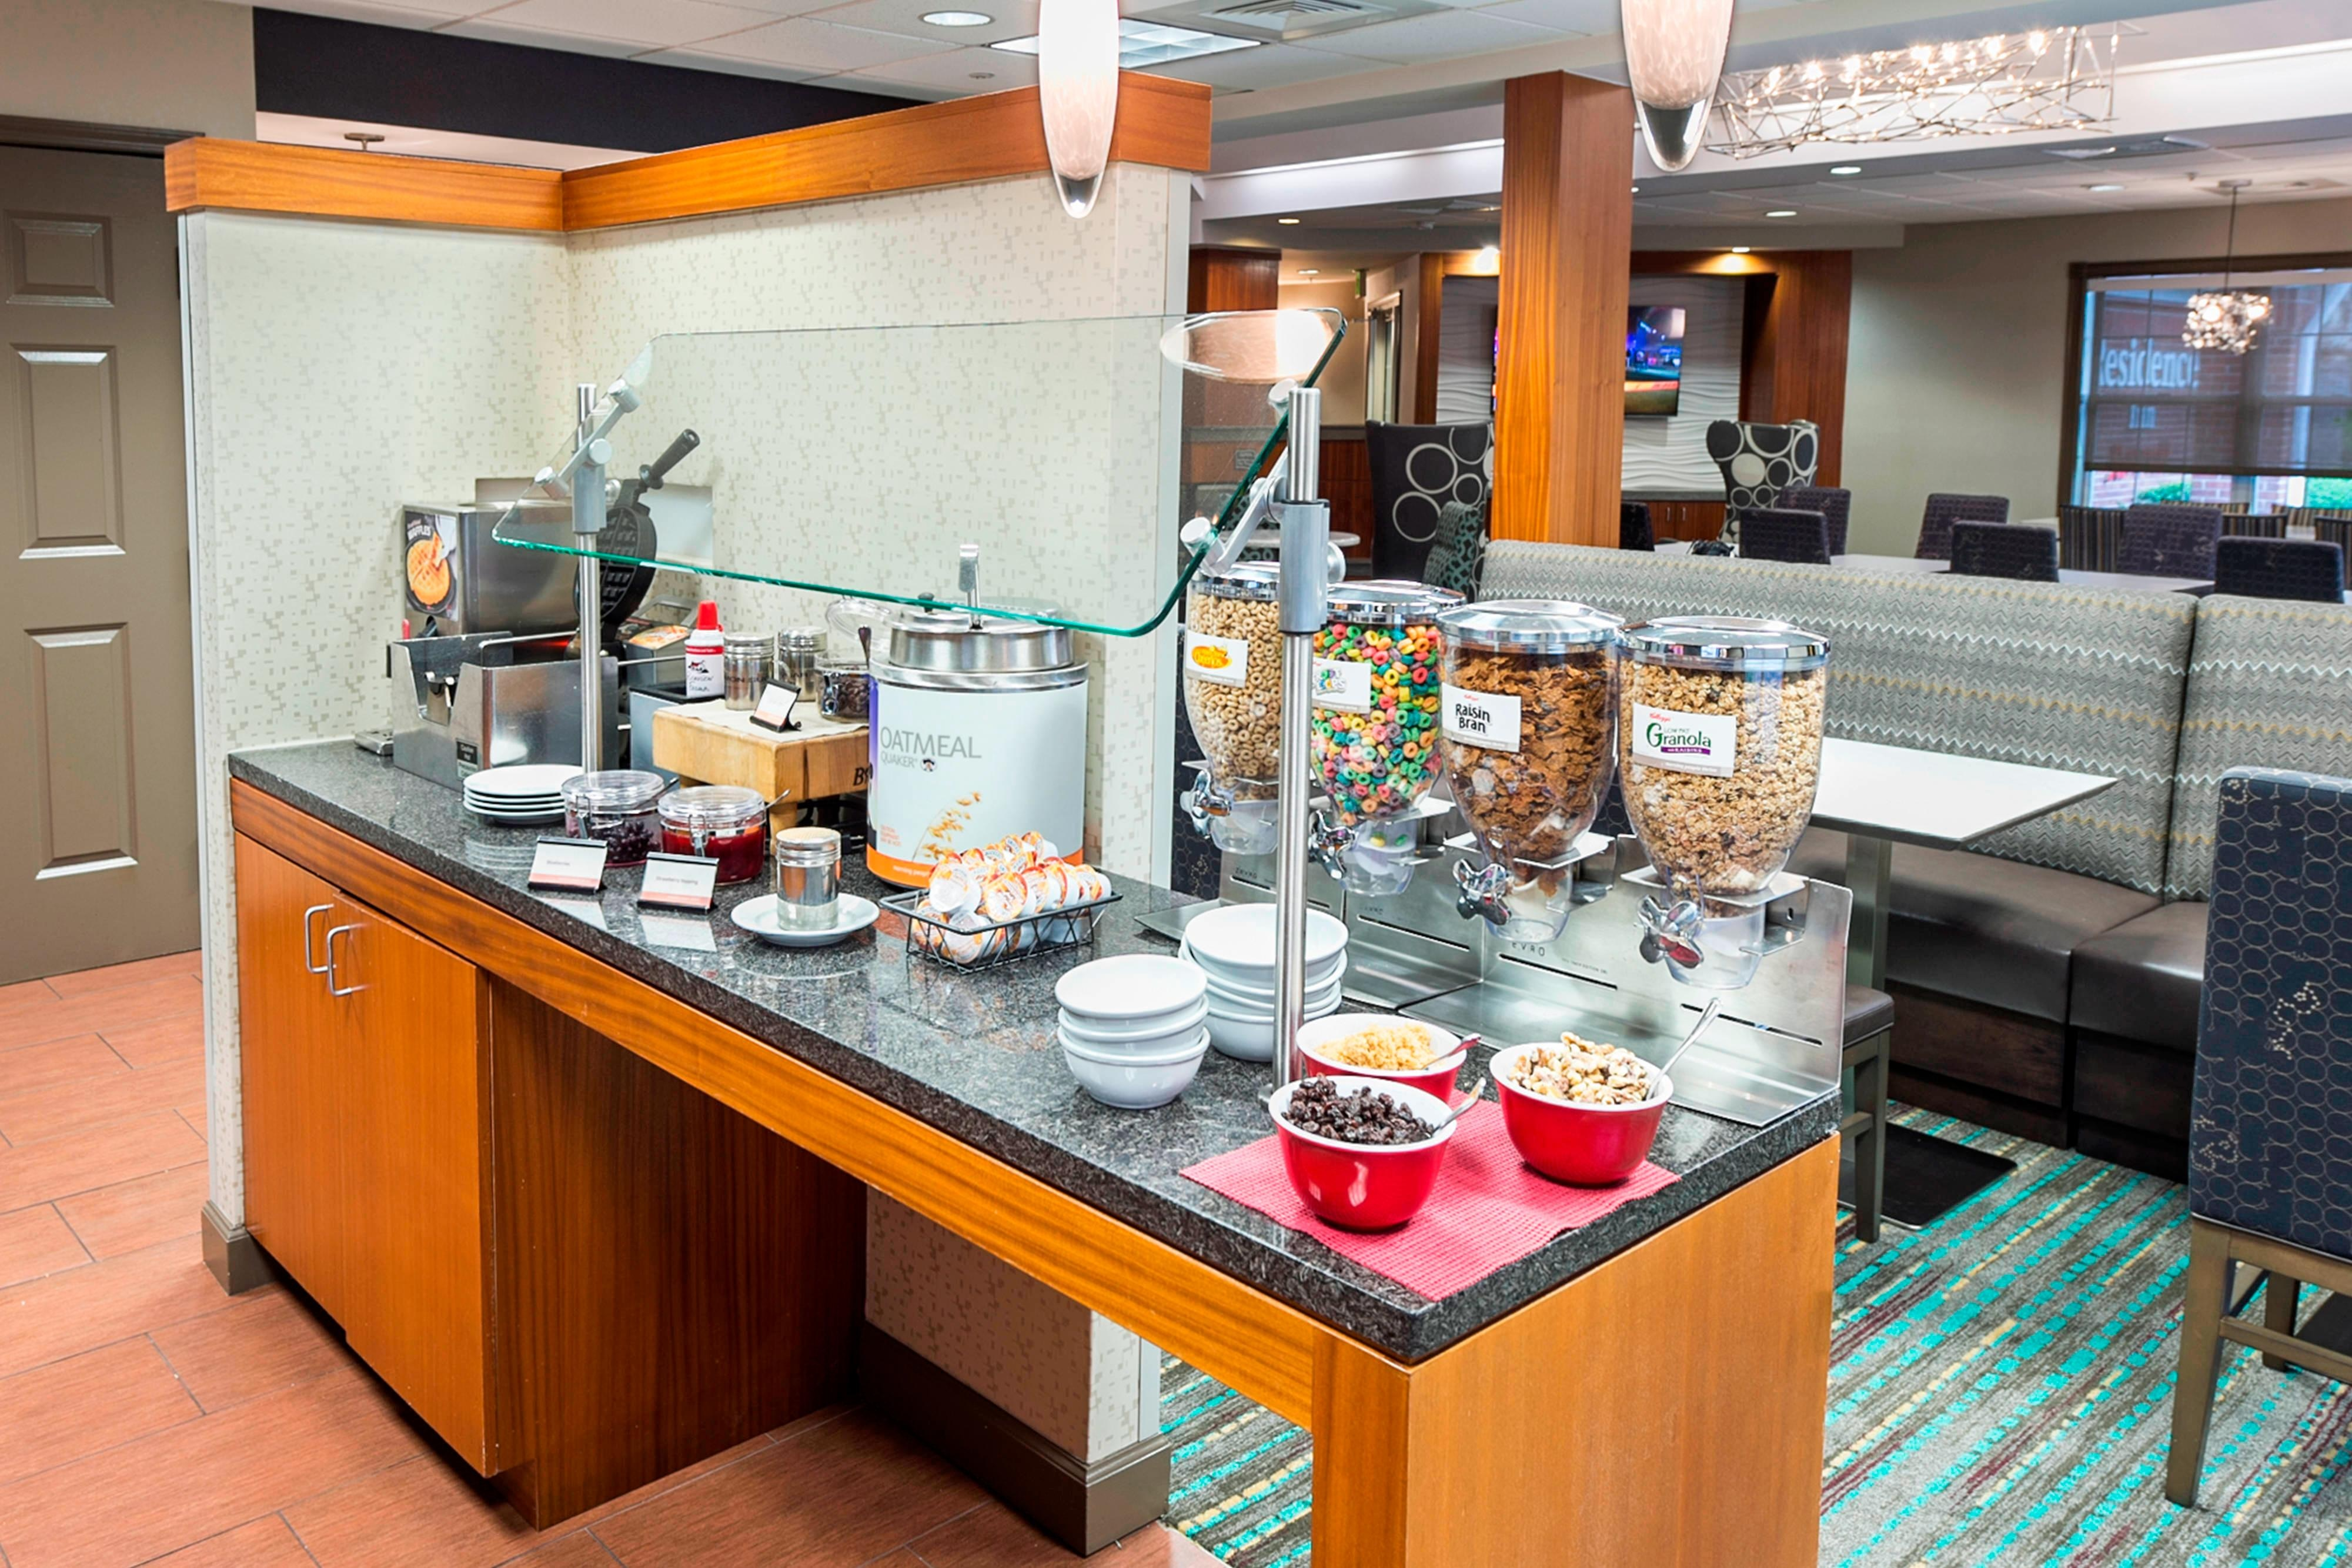 Residence Inn Lakeland breakfast buffet